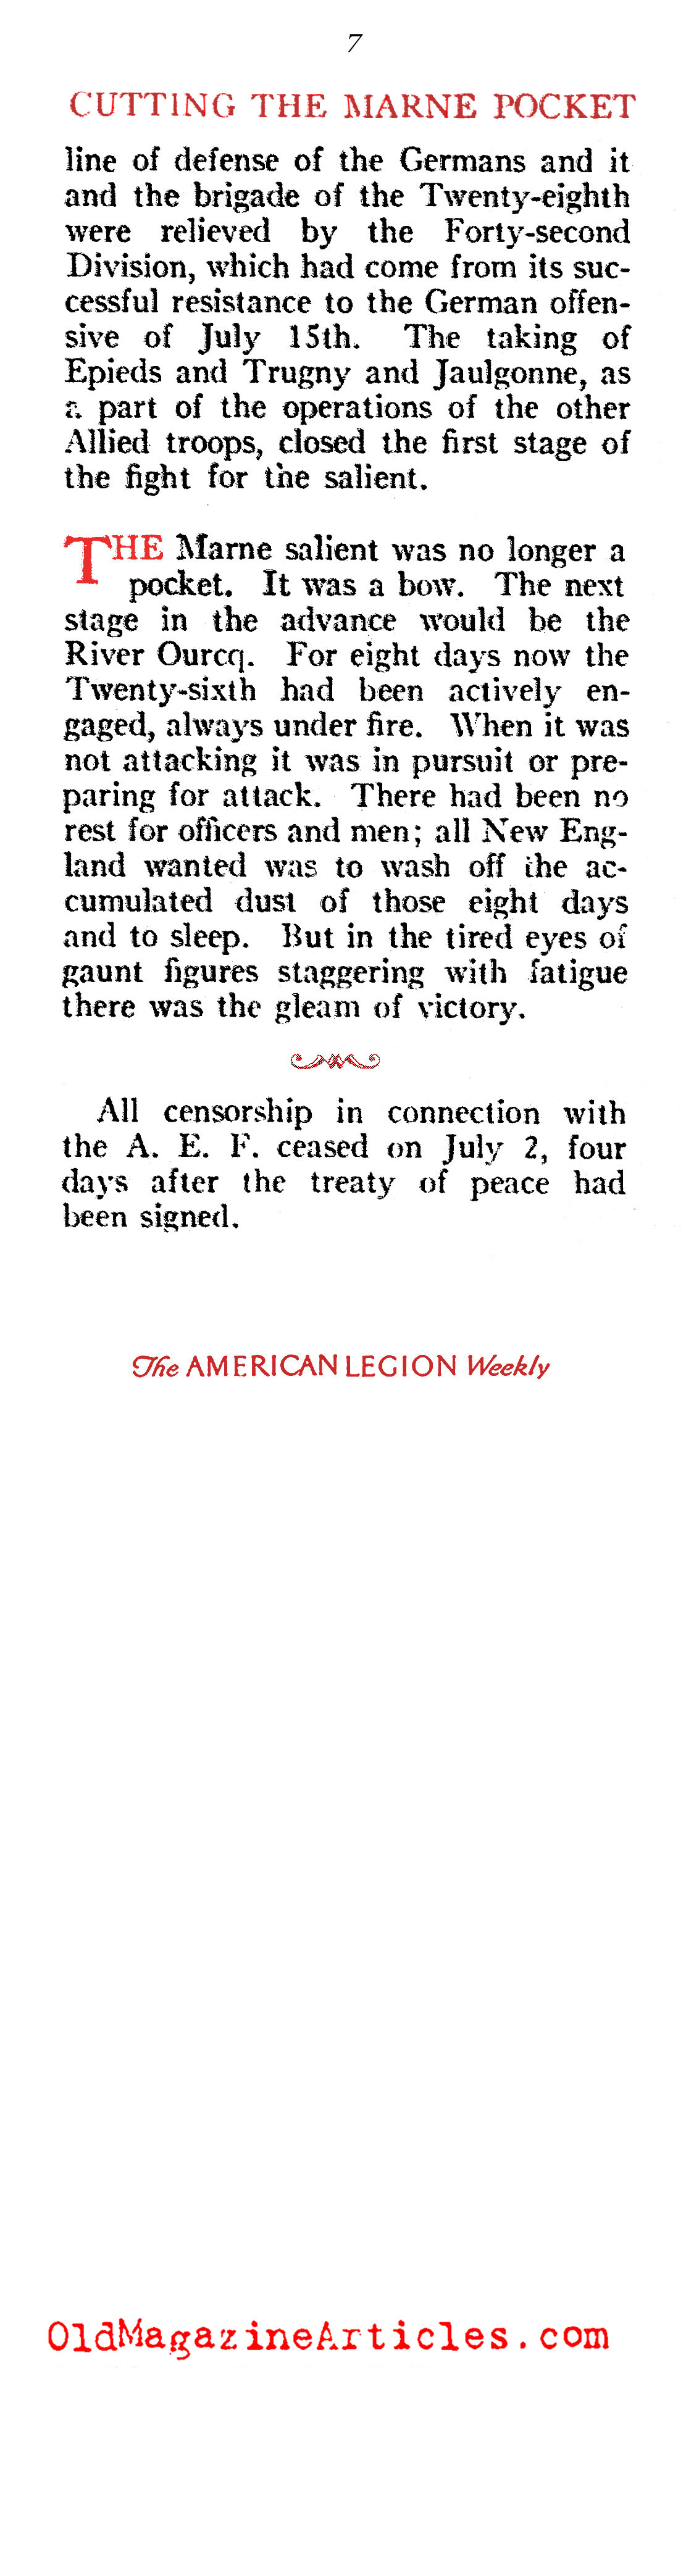 The Summer of 1918, pt. II (American Legion Weekly, 1919)